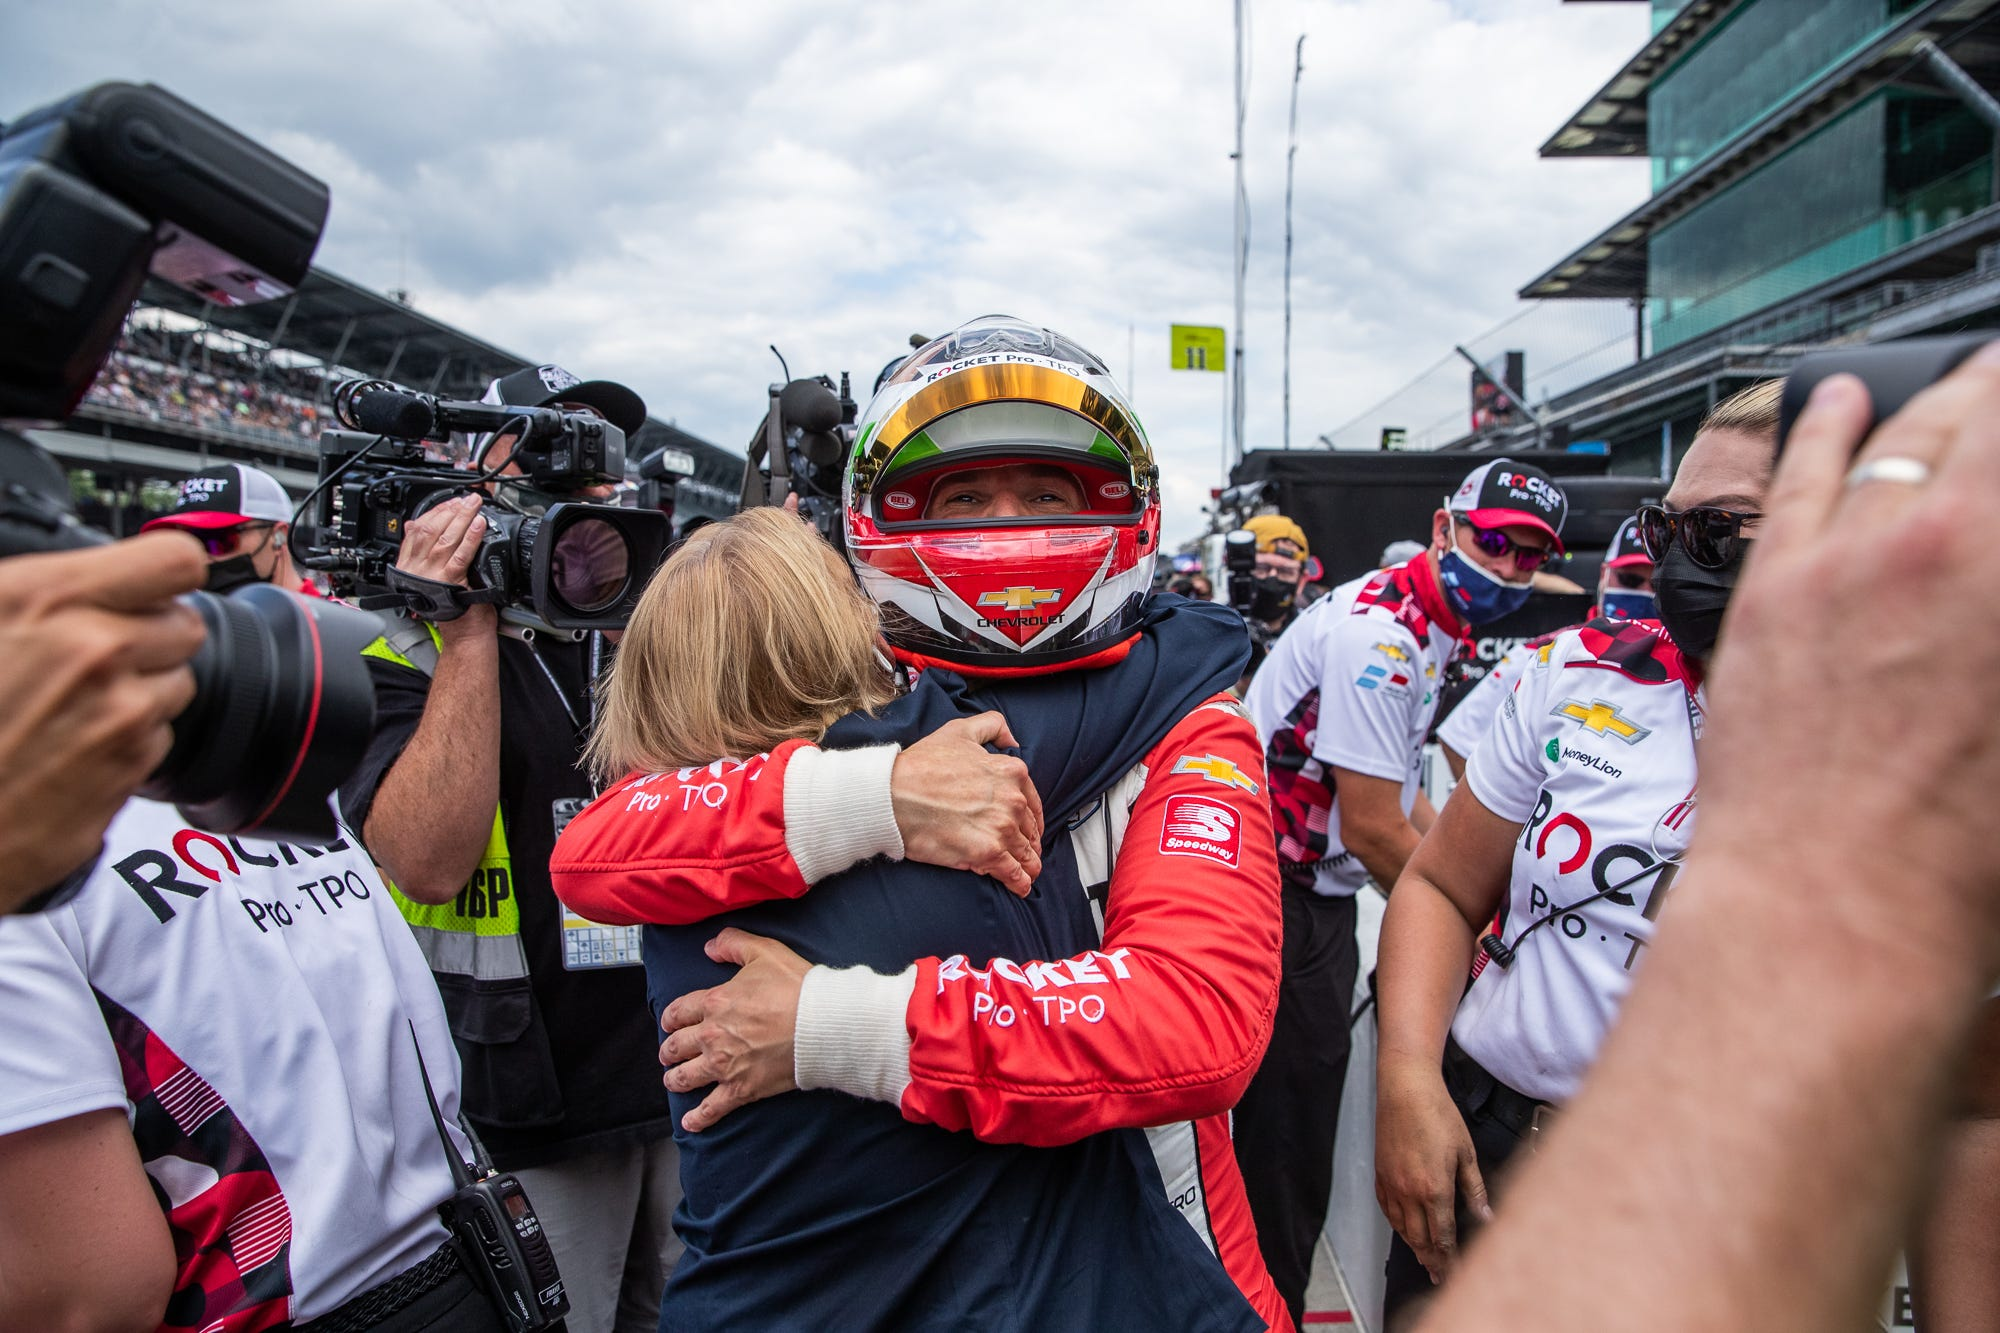 75 minutes of stress: Paretta Autosport survives Last Chance Qualifying to make Indy 500 field